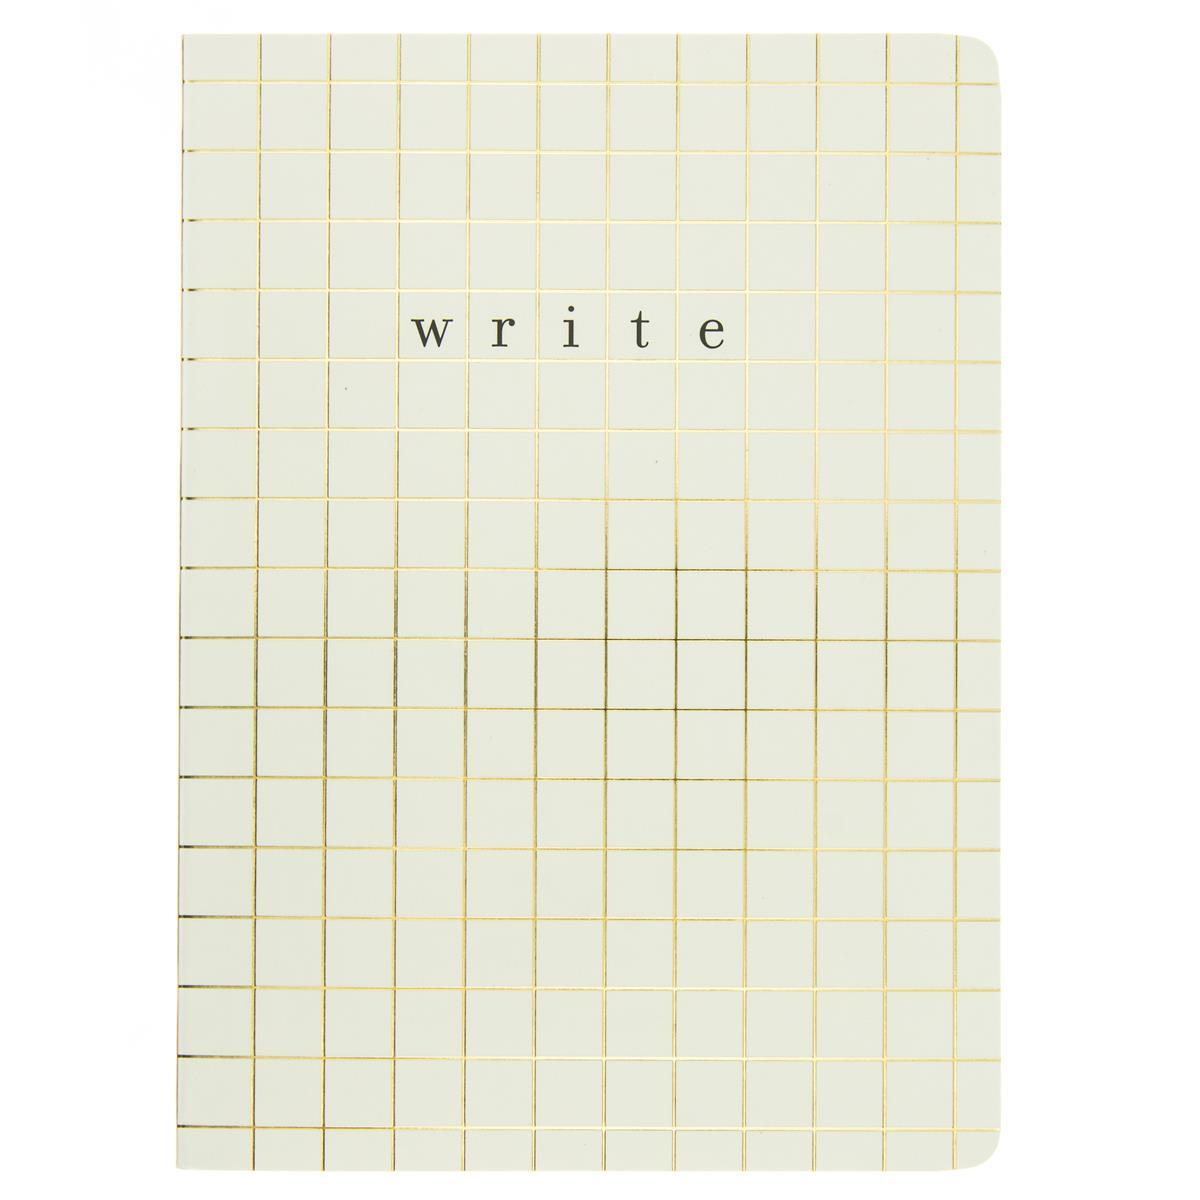 Grid 6x8 Soft Cover Paper Journal